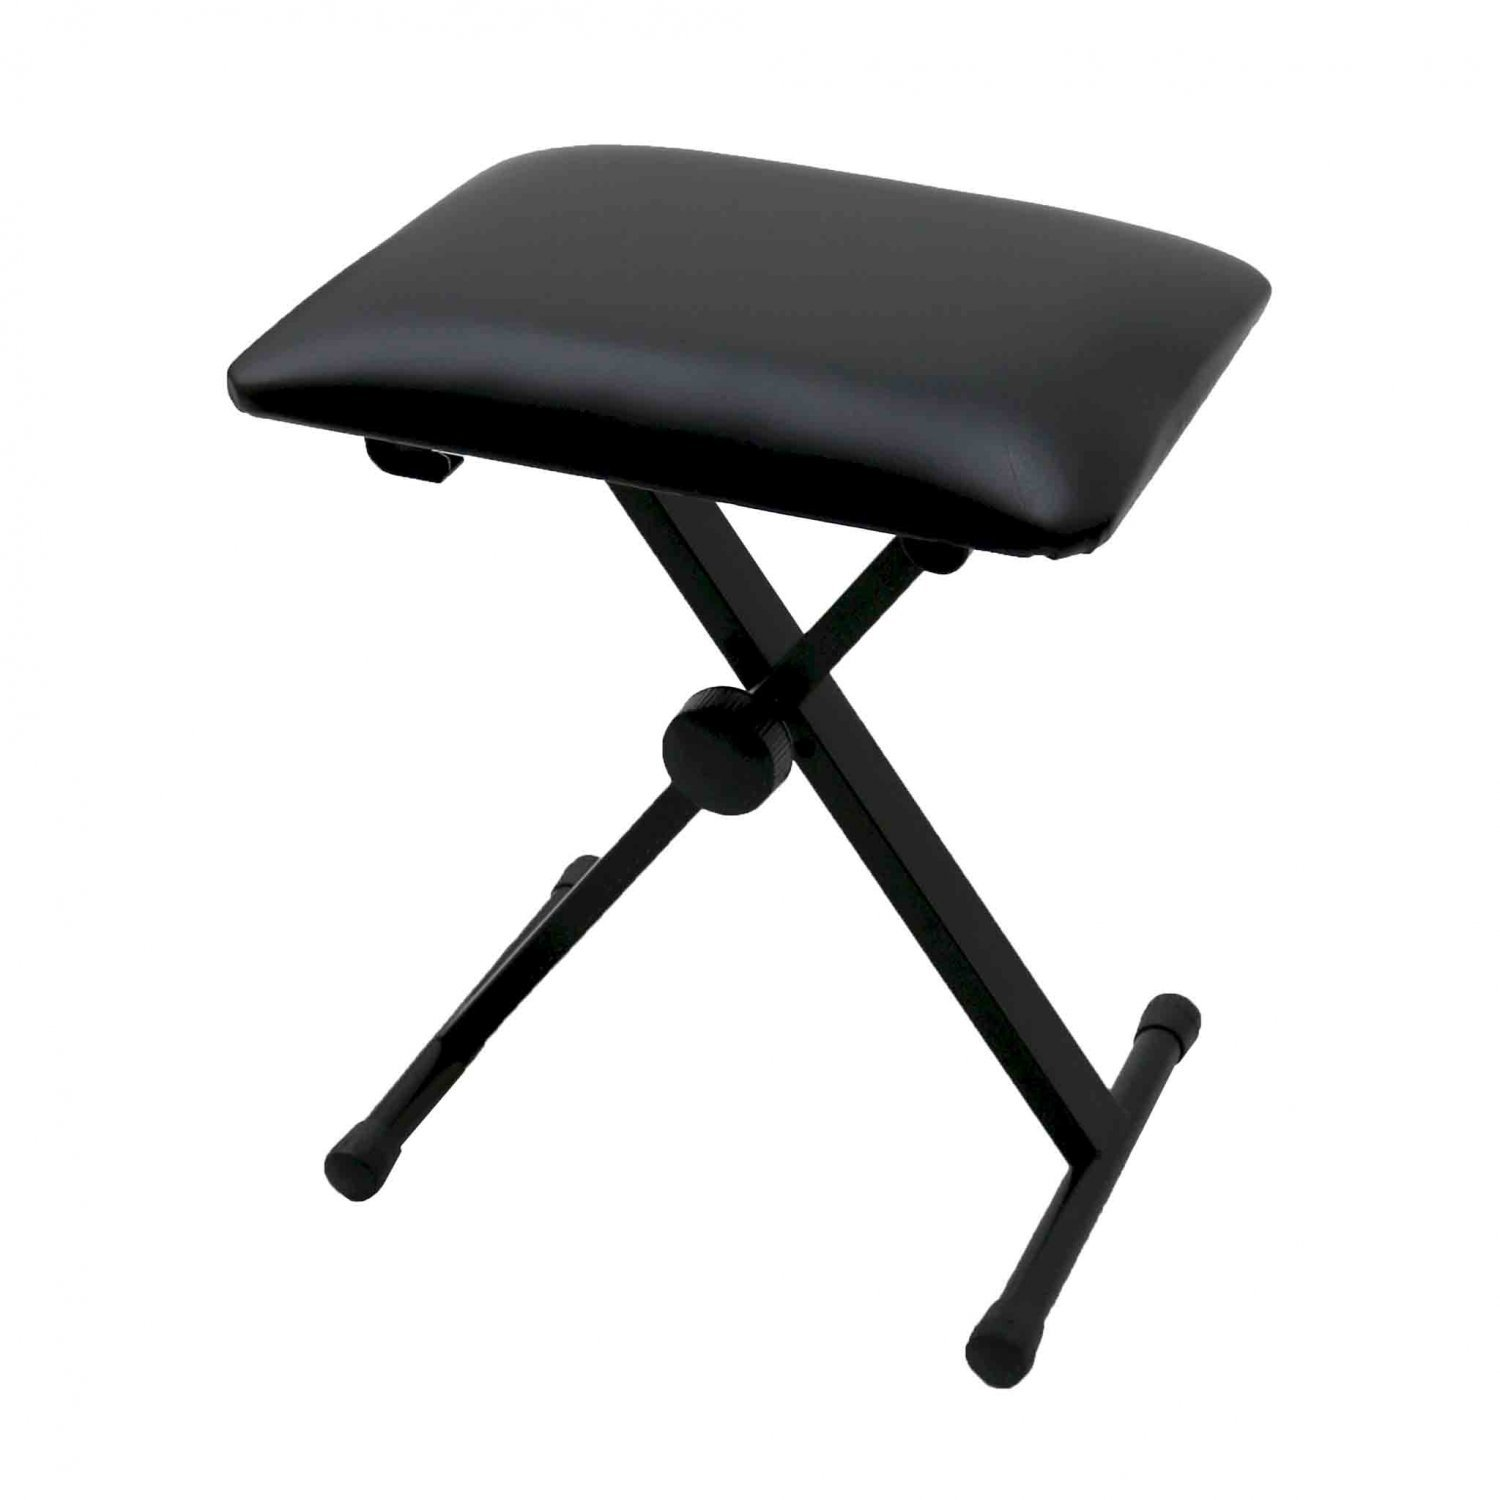 Keyboard Piano Bench Stool Seat Chair Throne Adjustable